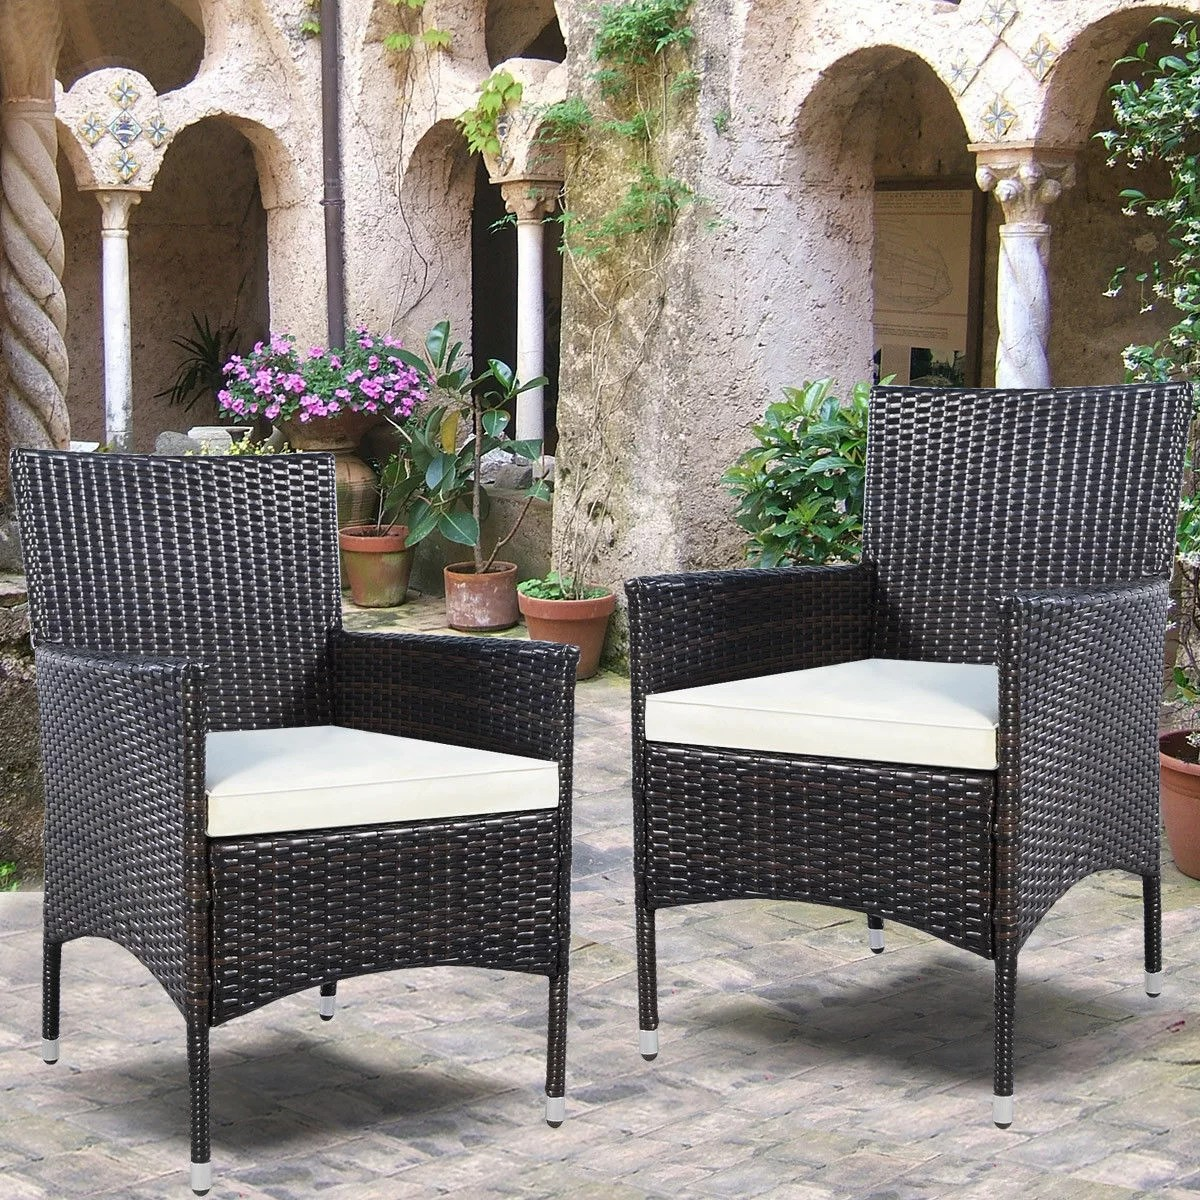 Outdoor Wicker Dining Chairs Duchesne Outdoor Wicker Patio Dining Chair With Cushion